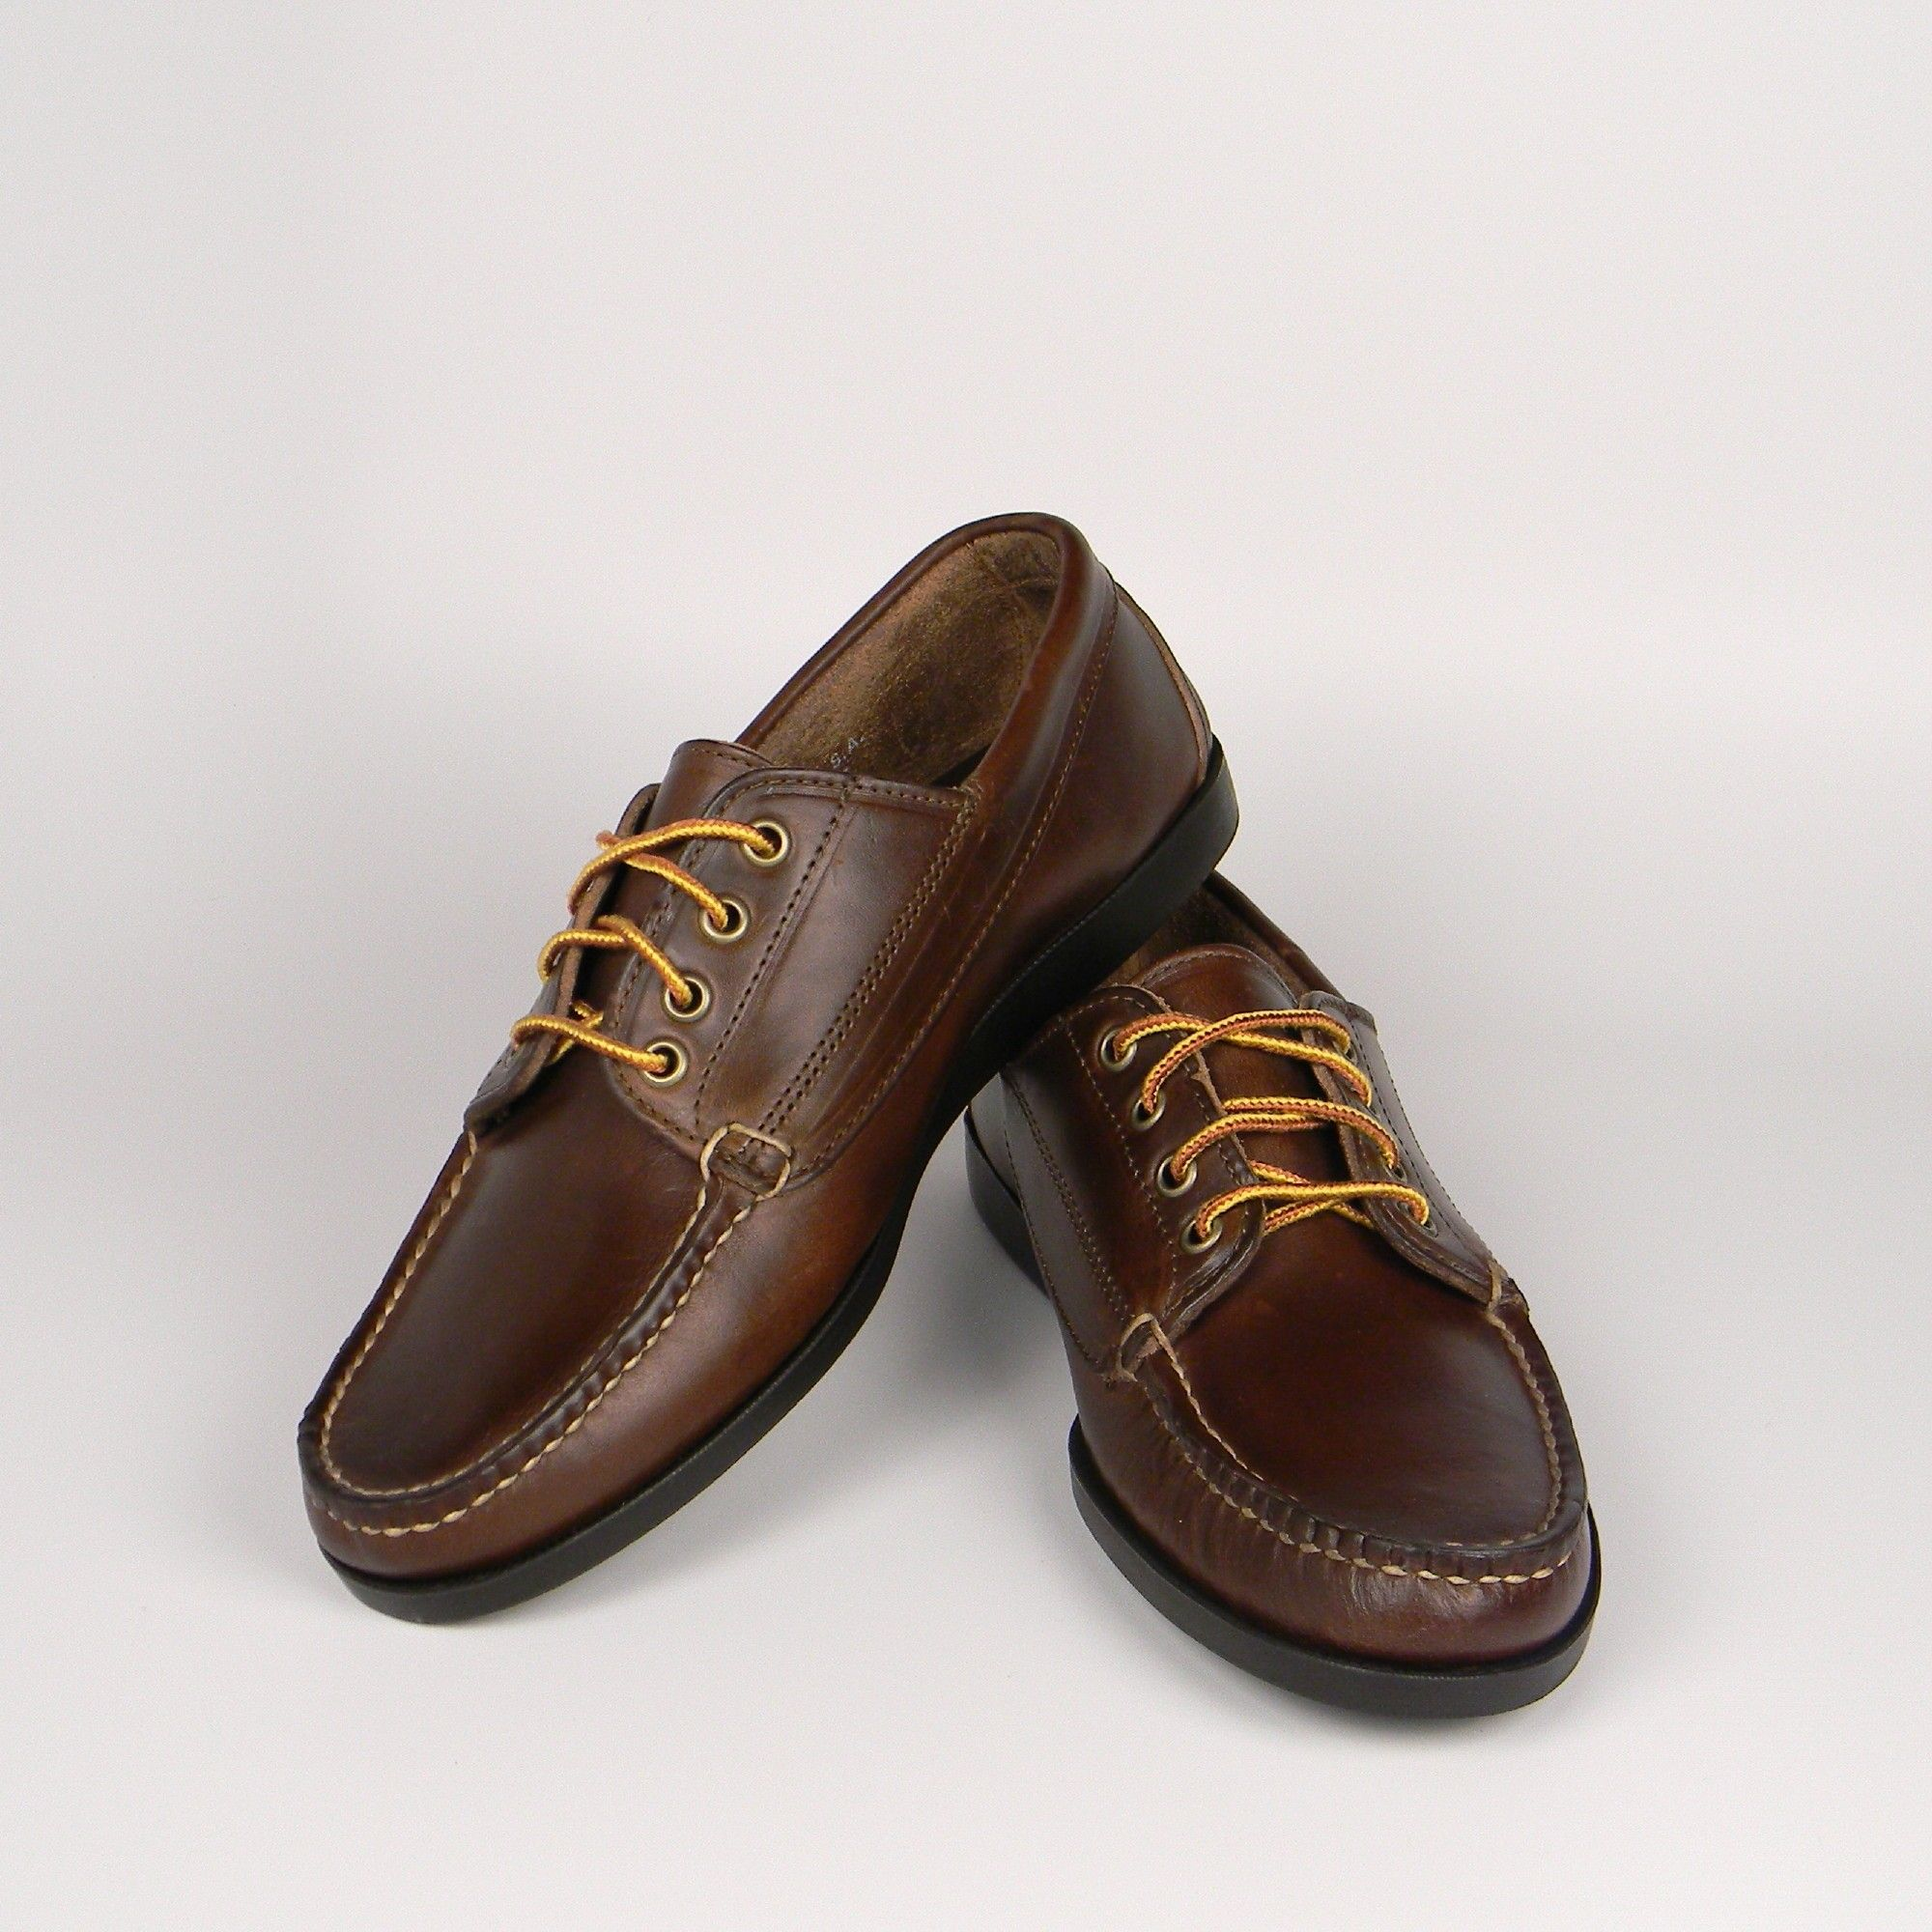 4-Eyelet Ranger Moc - Brown Chromexcel by Rancourt & Co. $215 ...